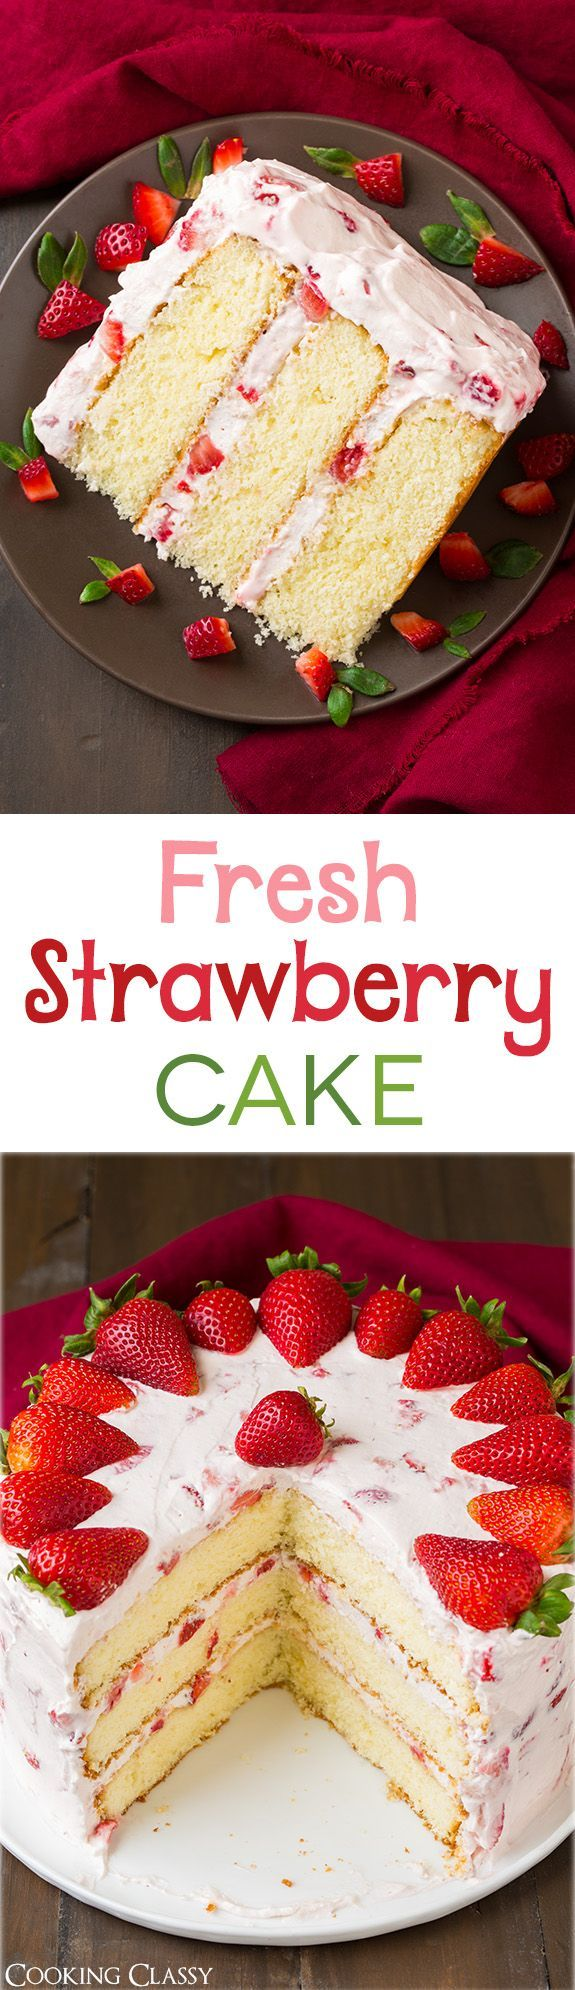 Strawberry Cake - this cake is DIVINE!! It's The perfect summer cake. I've made it twice and can't wait to make it again! The cream cheese in the whipped cream topping makes all the difference.